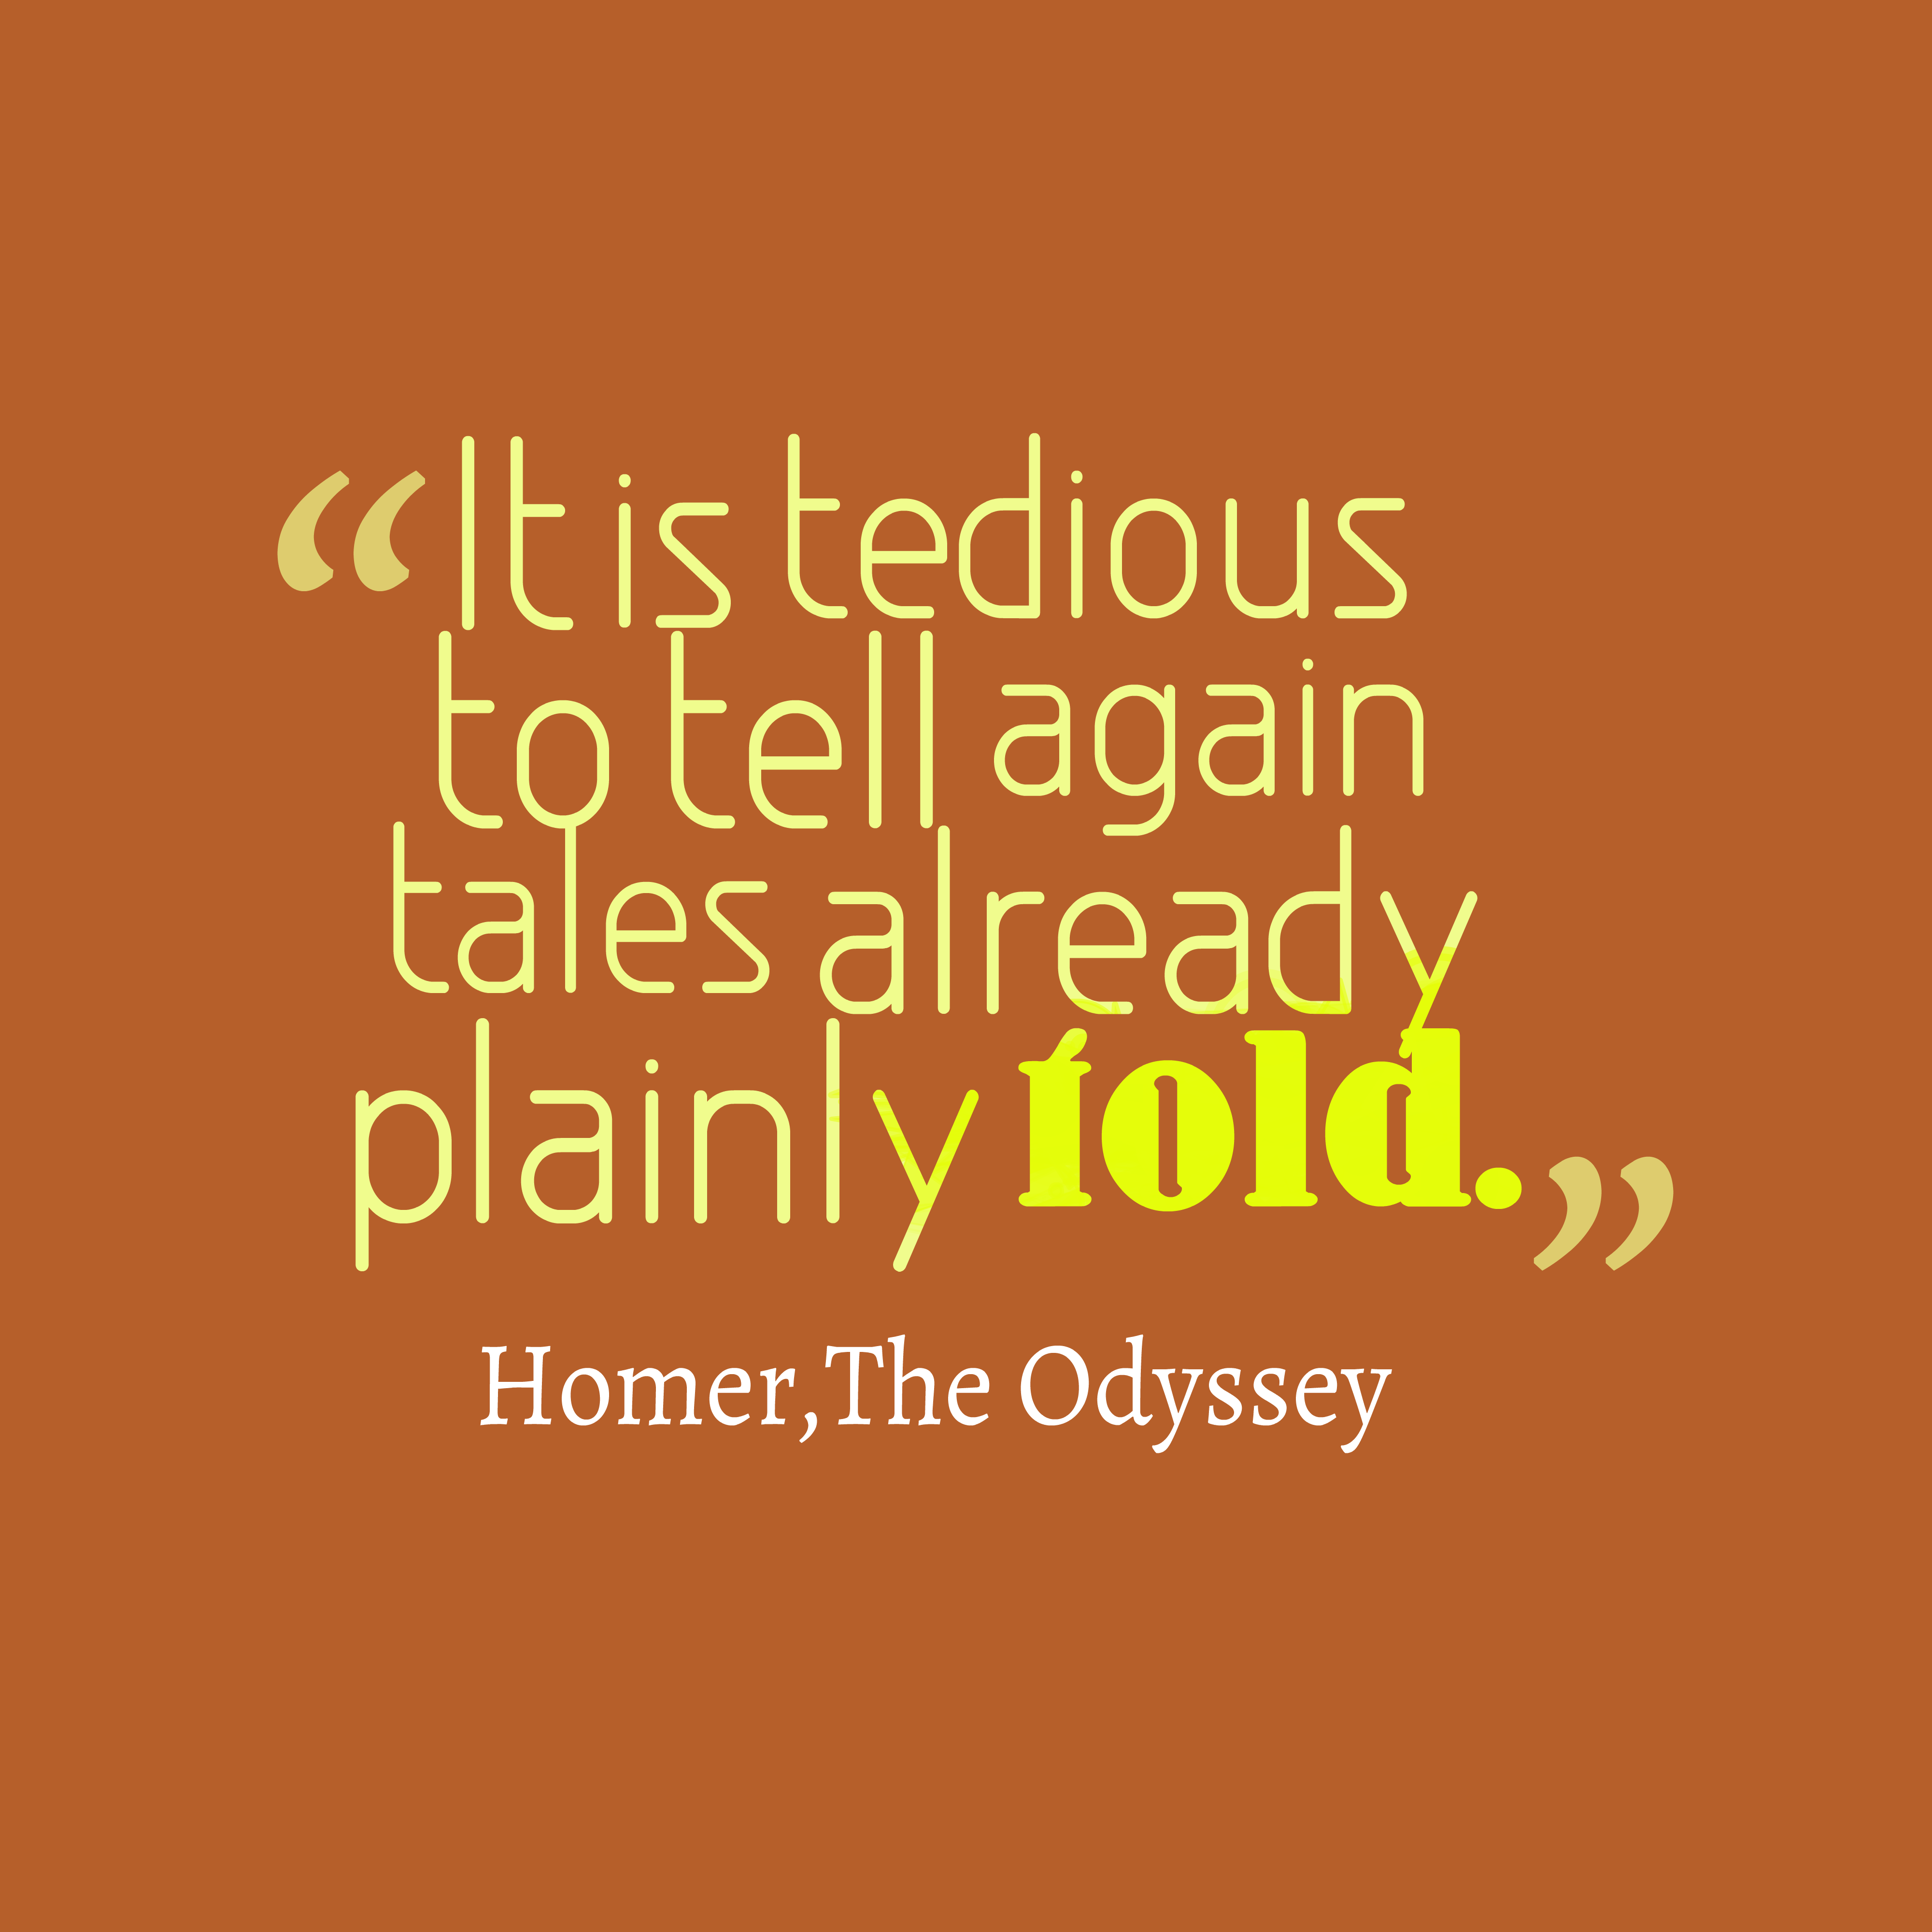 Quotes From Book 10 Of The Odyssey: Get High Resolution Using Text From It Is Tedious